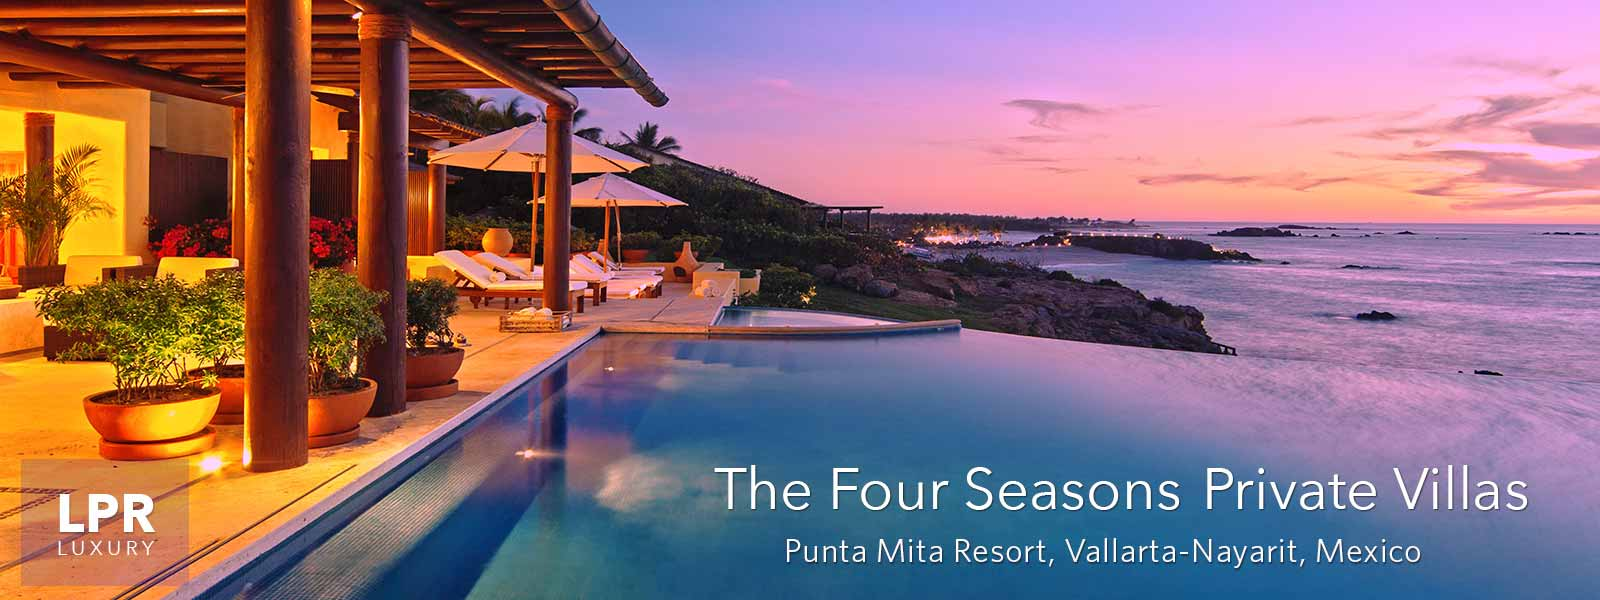 four seasons private villas - punta mita luxury real estate